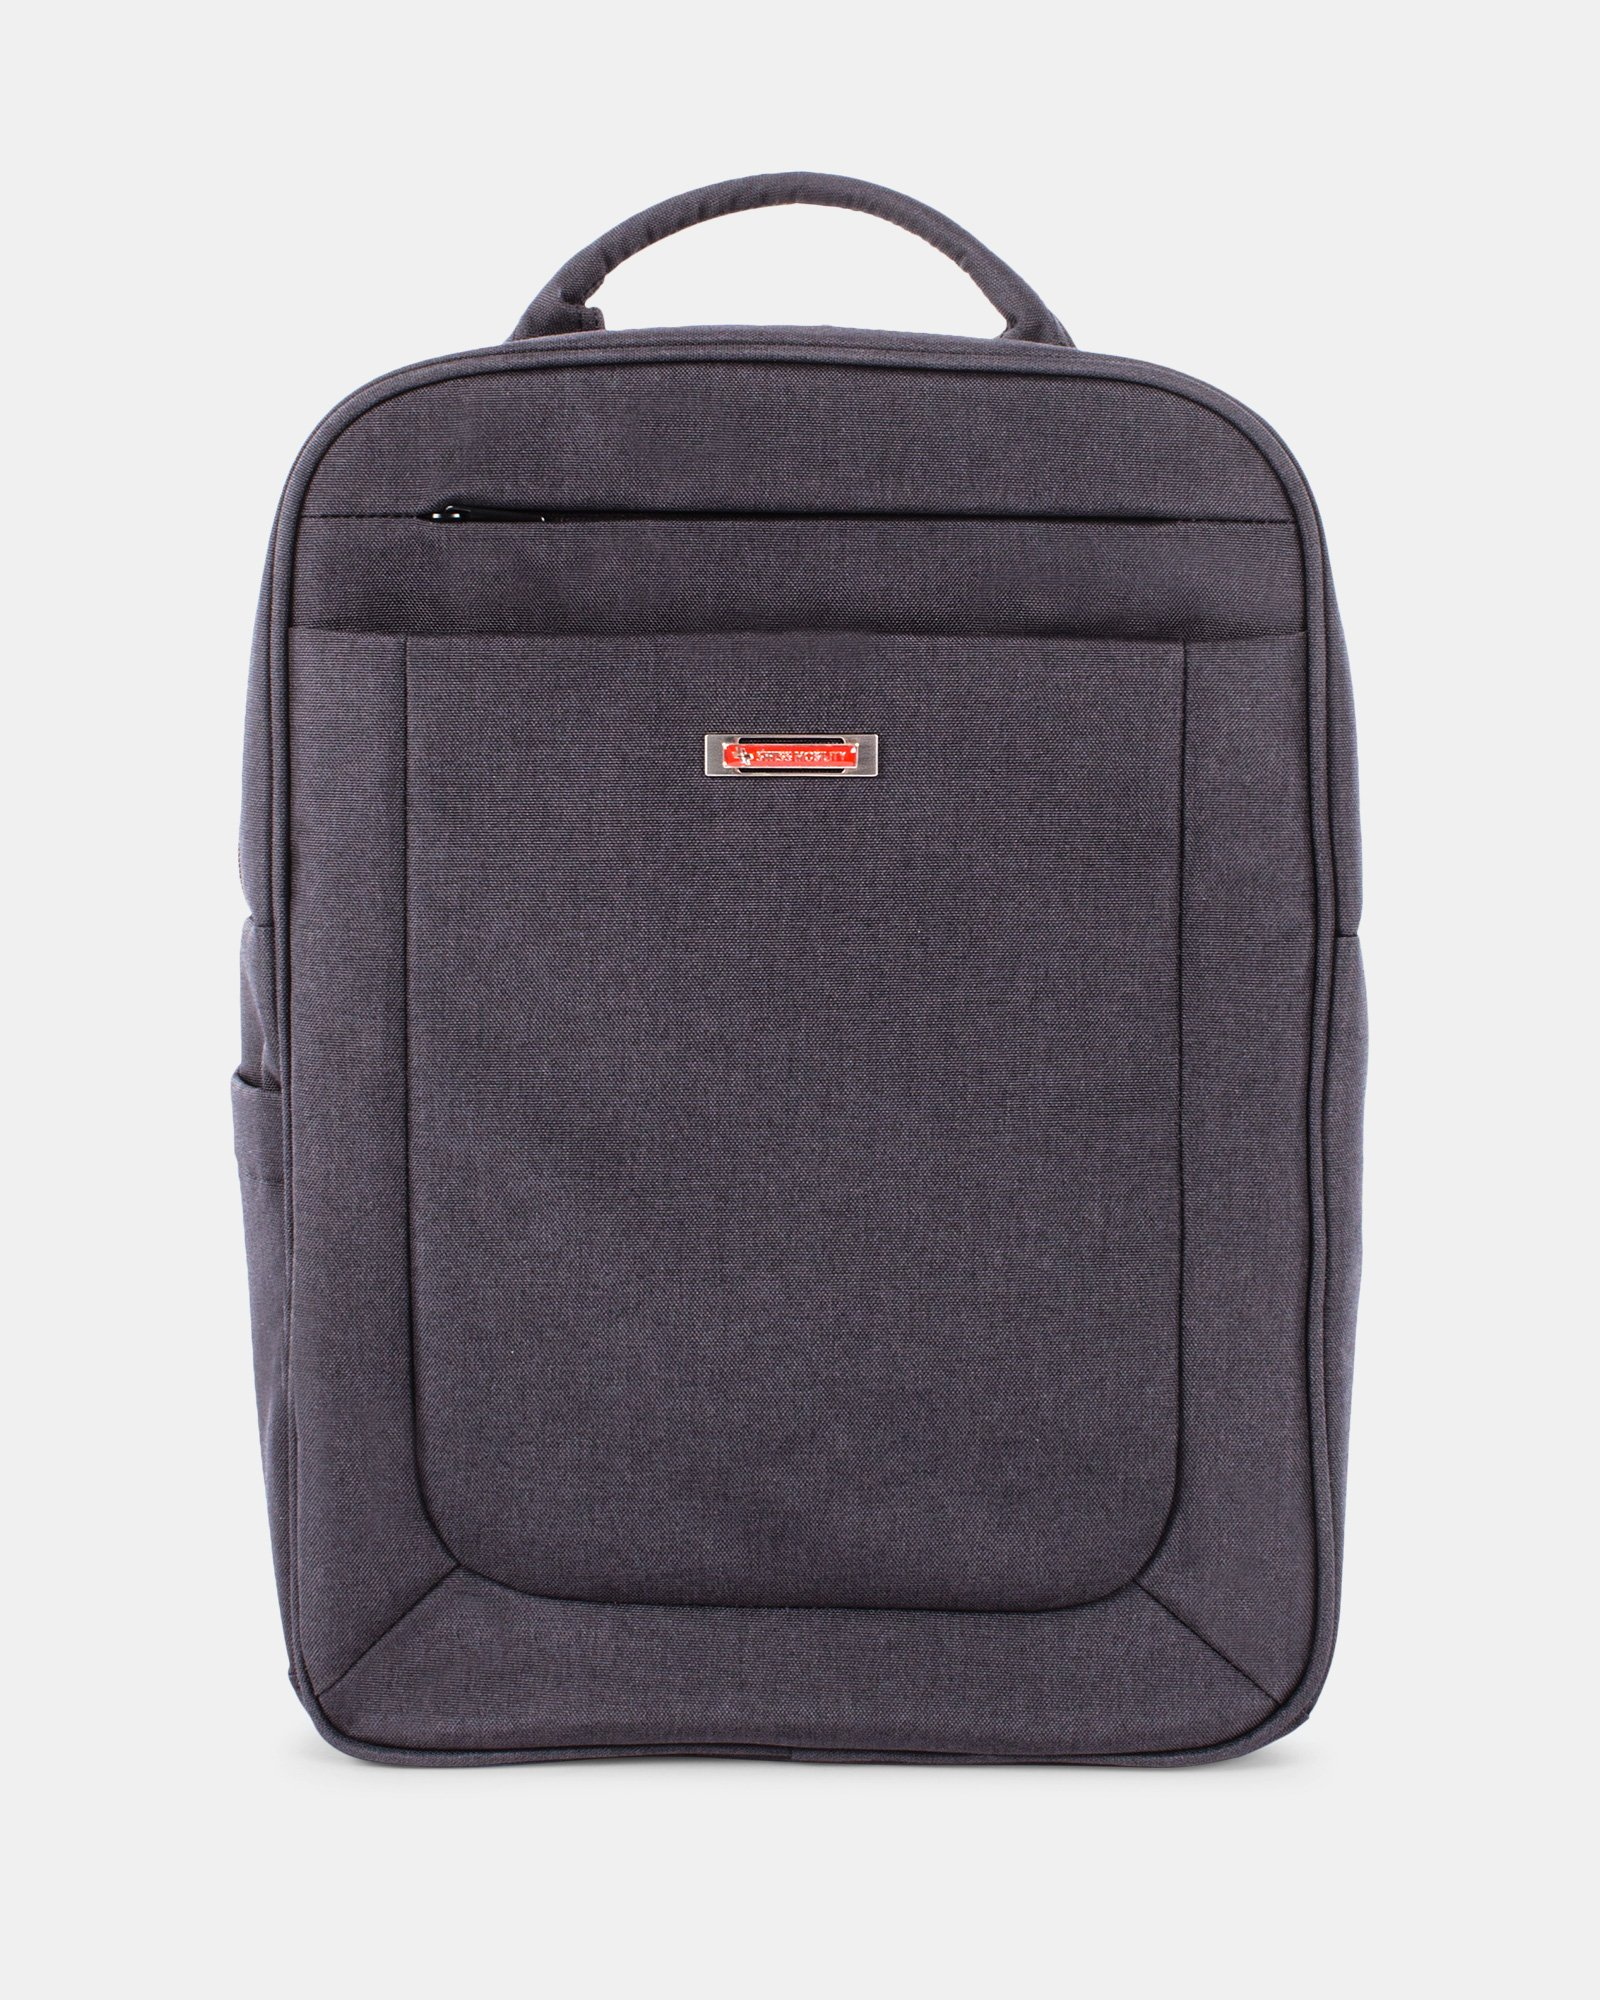 CADENCE-Backpack Double compartment - Swiss Mobility - Zoom